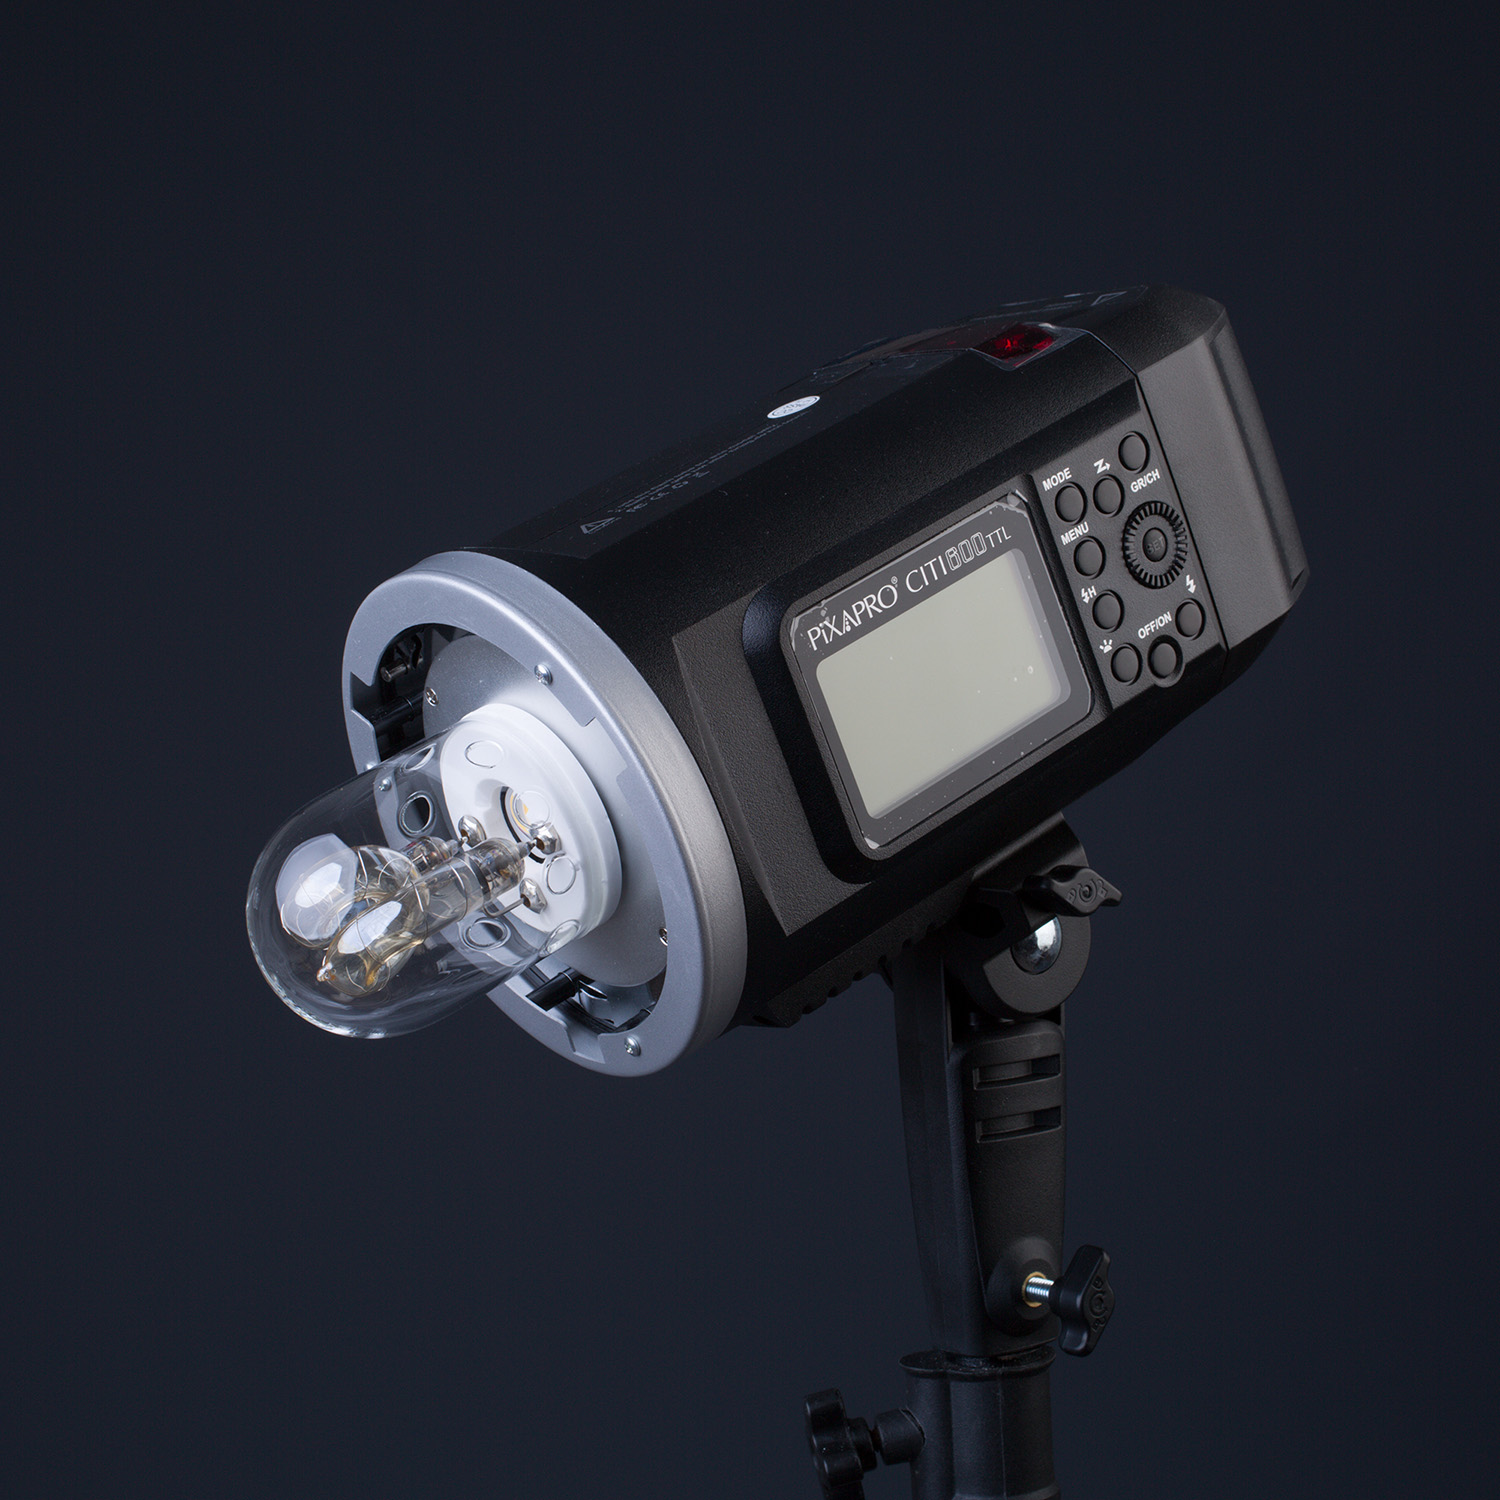 Light Review: The PiXAPRO CITI600 Portable Strobe (Godox Wistro AD600BM)